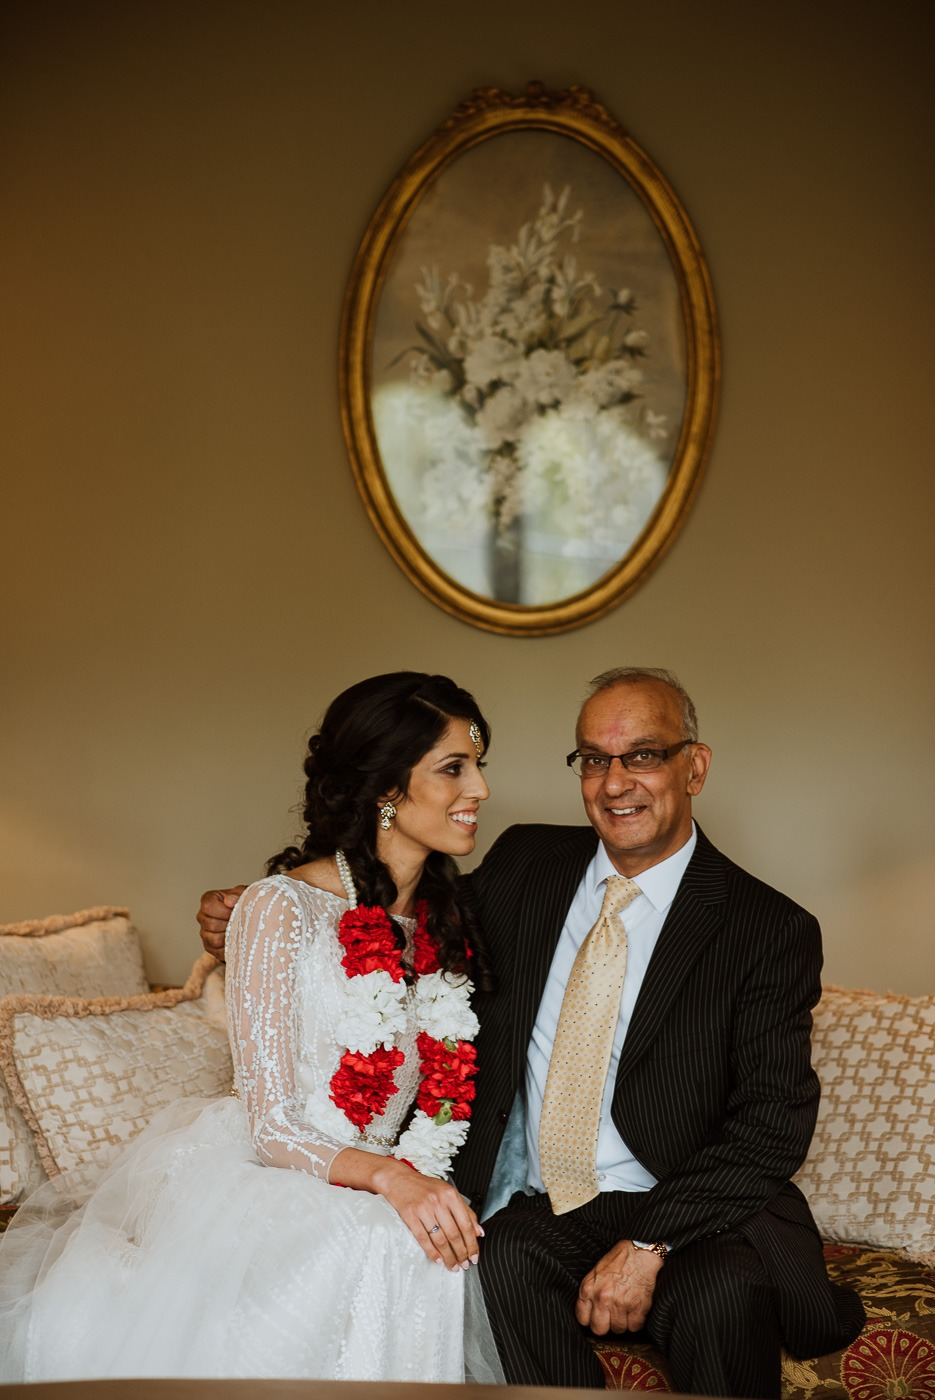 A man and woman sitting in front of a mirror posing for the camera